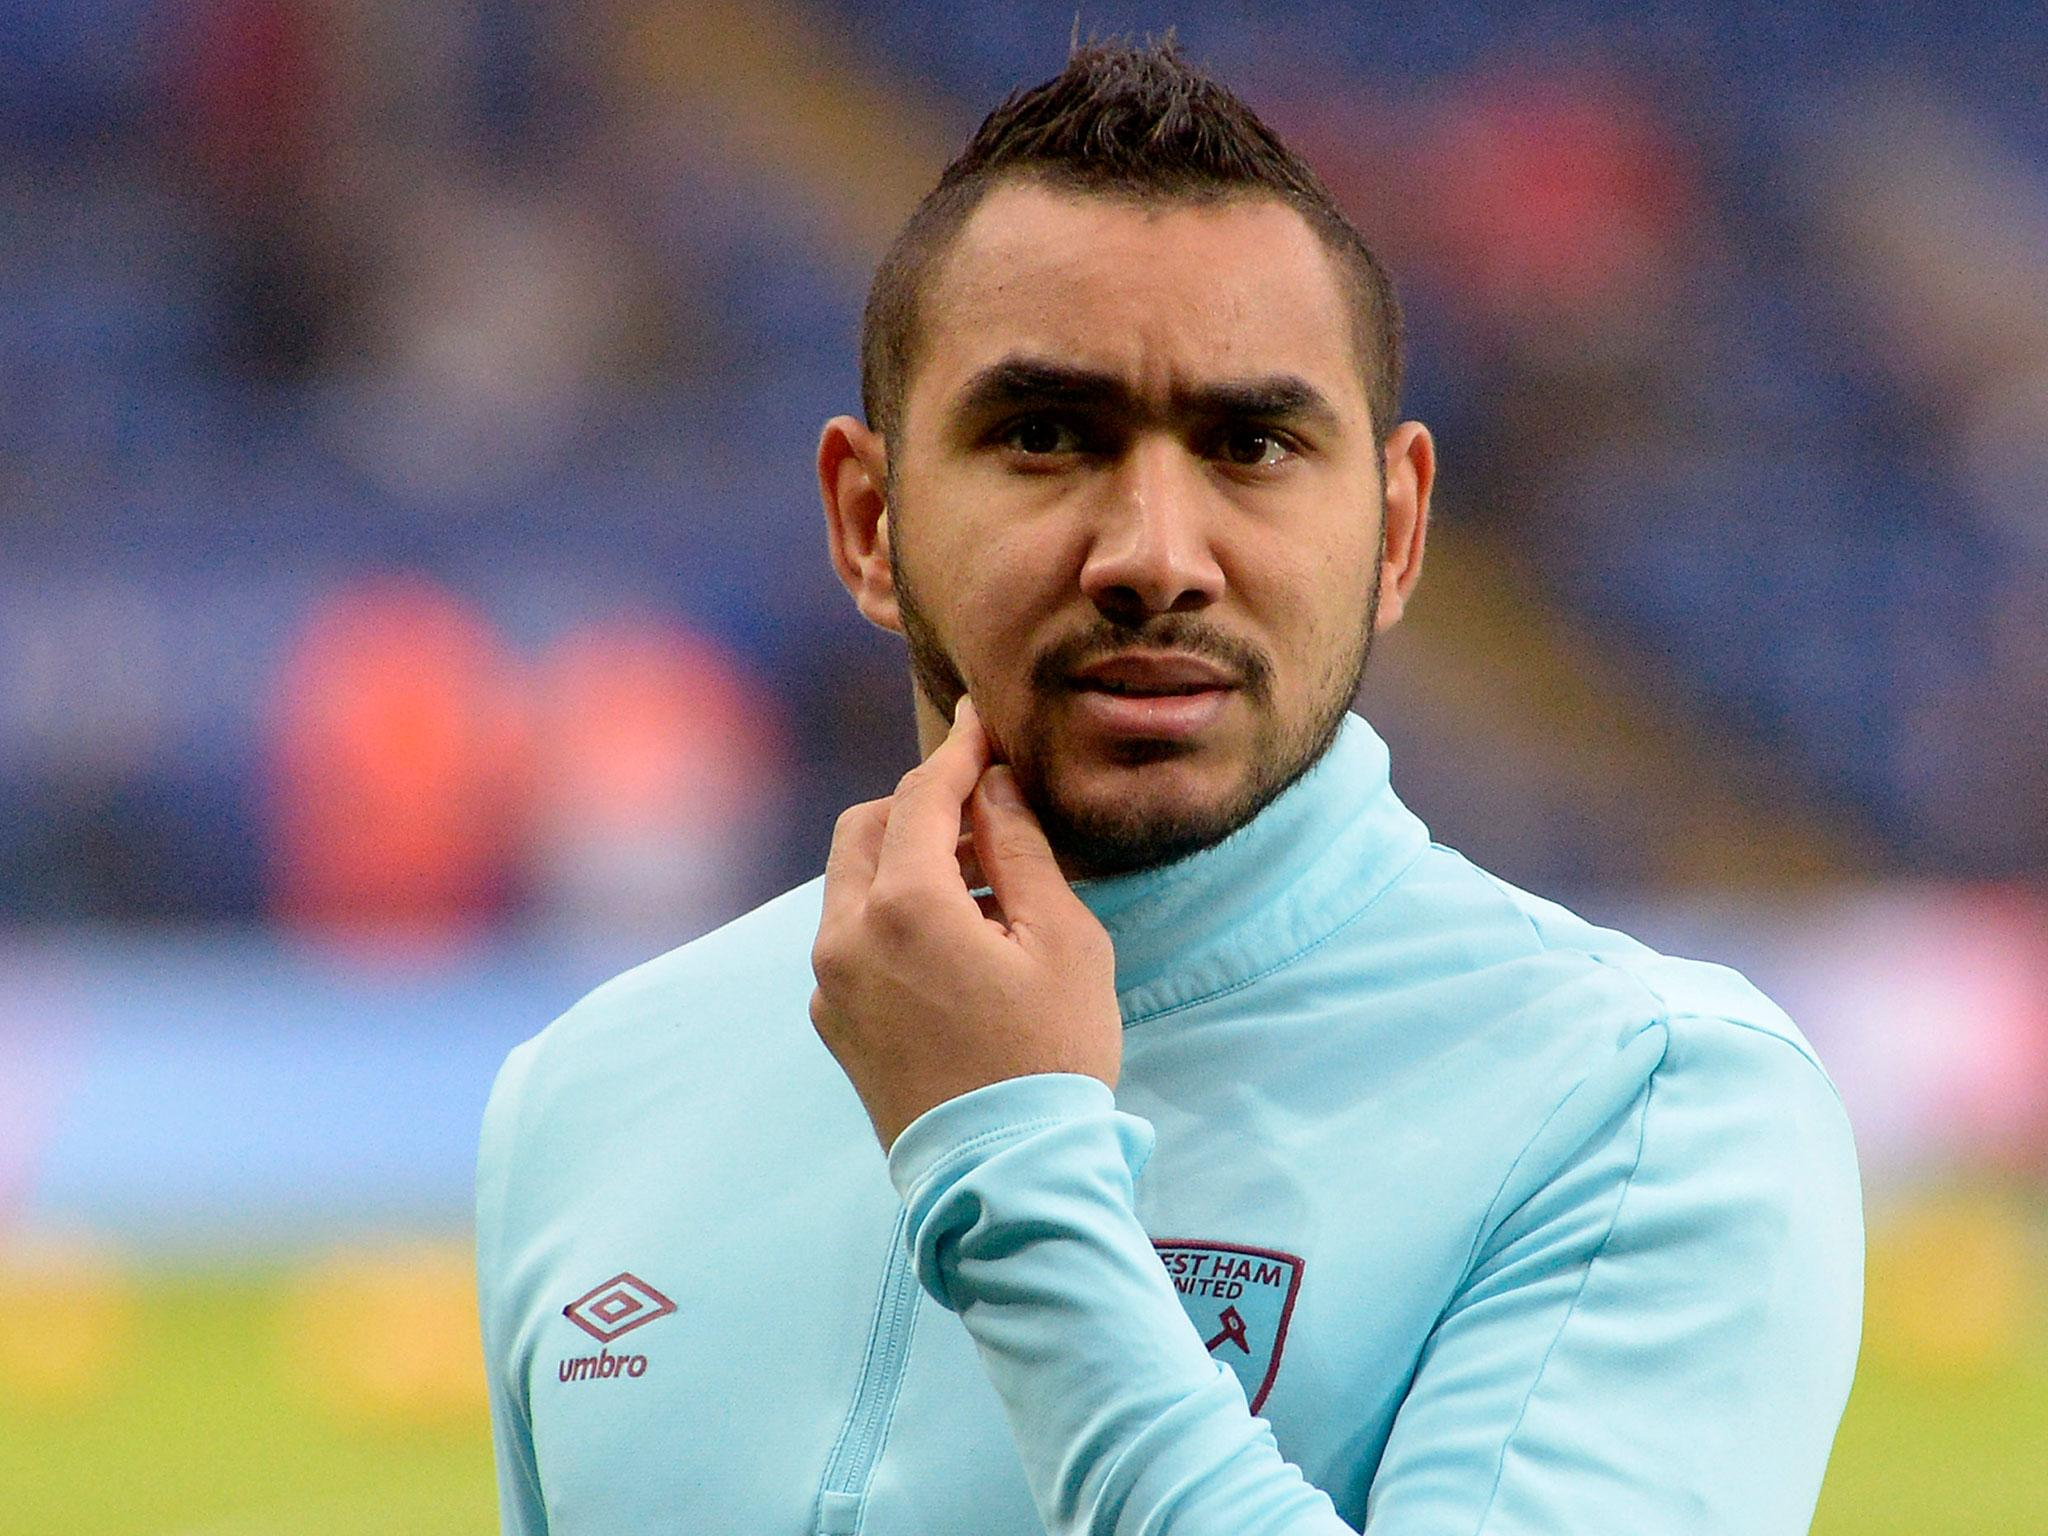 Dimitri Payet to be sold sooner rather than later as Slaven